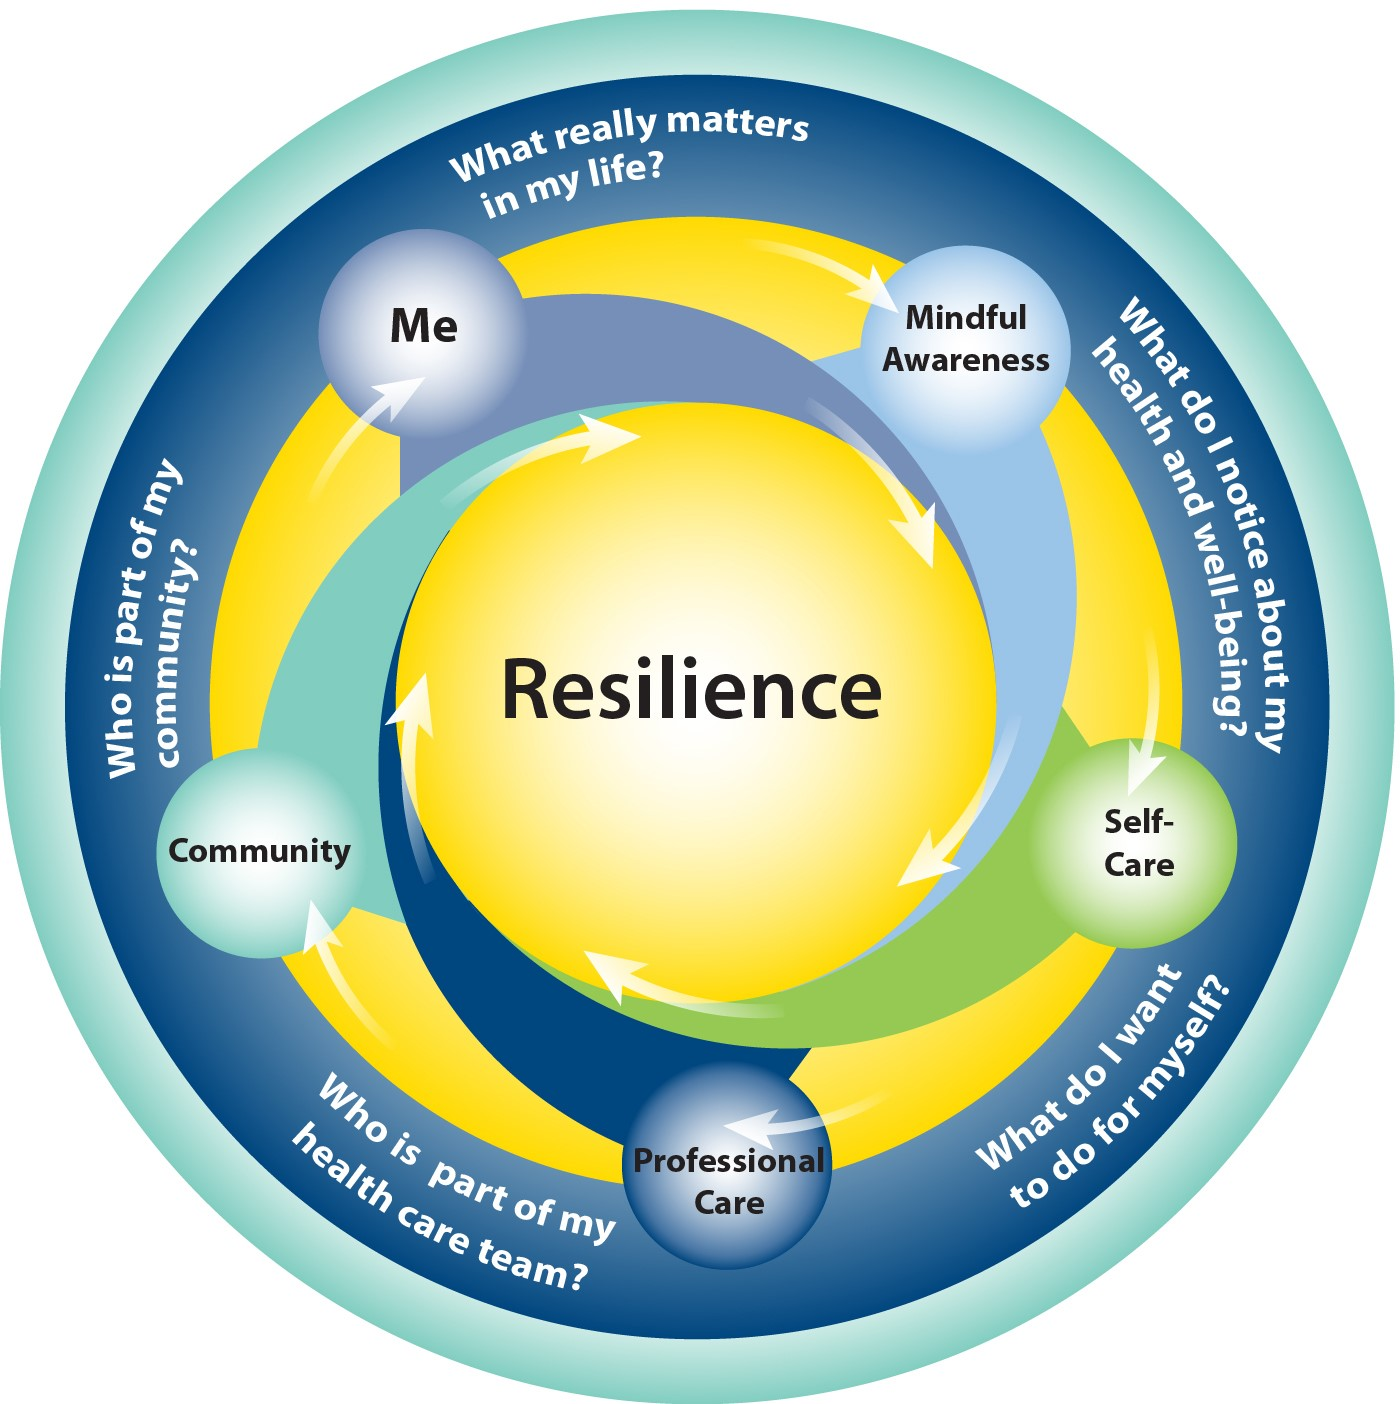 At the center is resilience. The circle consists of me (what really matters in my life?), leading to mindful awareness (what do I notice about my health and well-being), leading to self-care (what do I want to do for myself), leading to professional care (who is part of my health care team) leading to community (who is part of my community?), leading to me, where the cycle repeats.